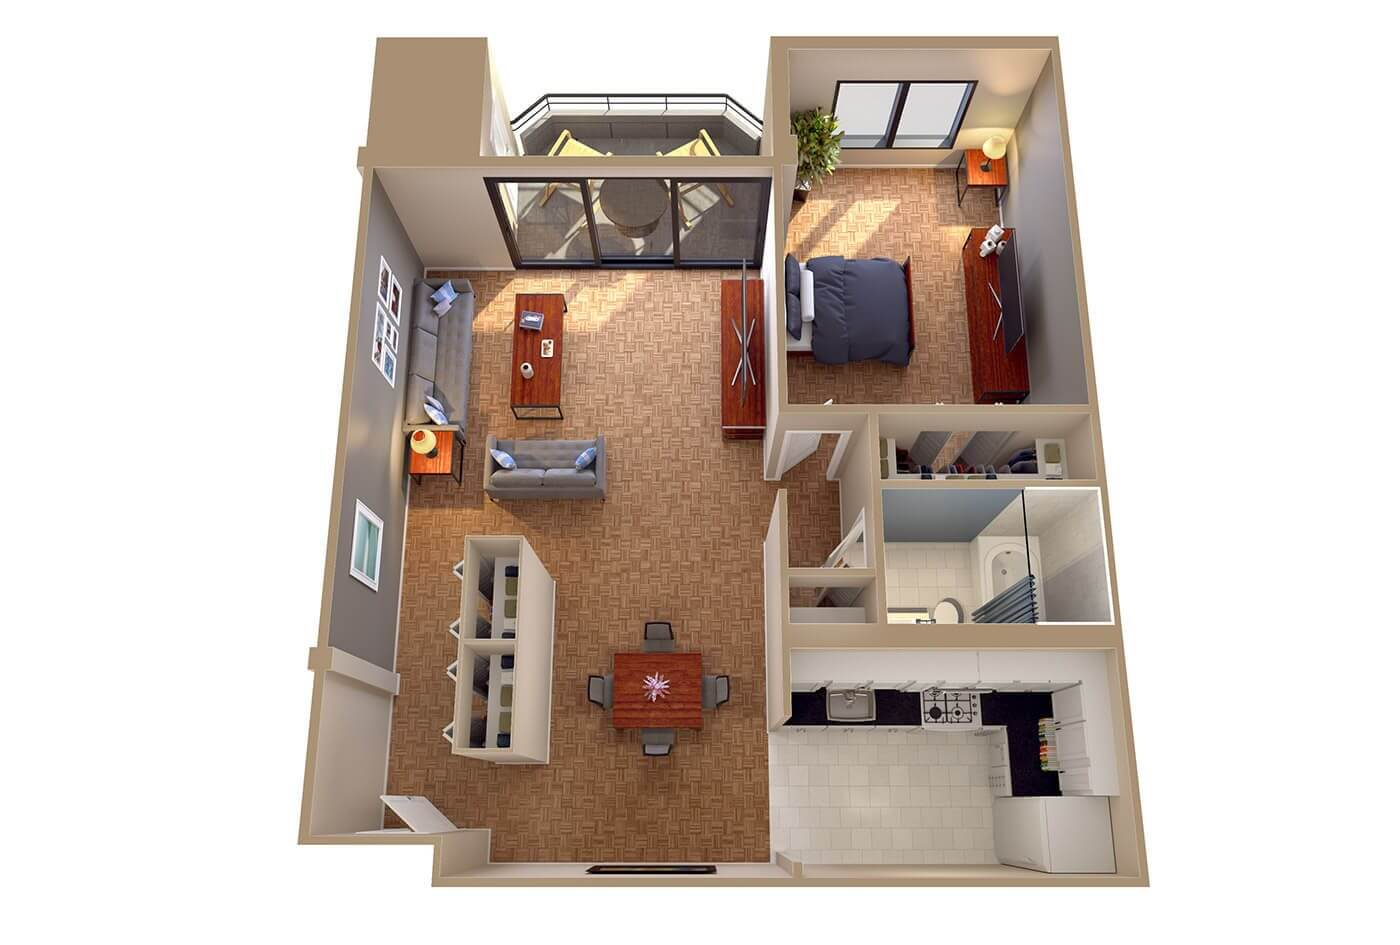 The Wisconsin 1 Bedroom Apartment Floor Plans